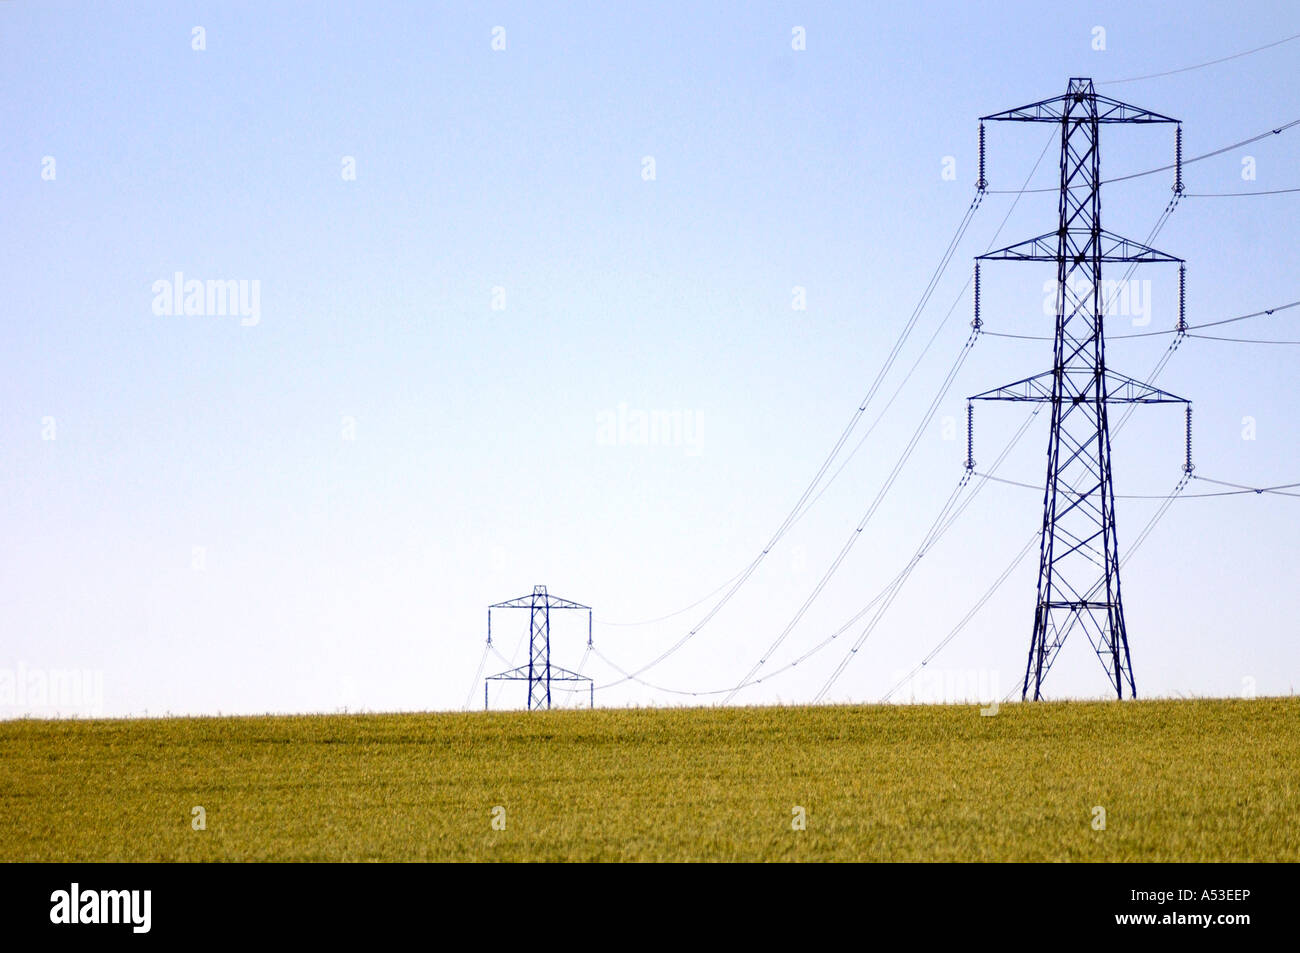 British pylon in farmers field UK showing our carbon footprint with electricity power pylon in field UK - Stock Image